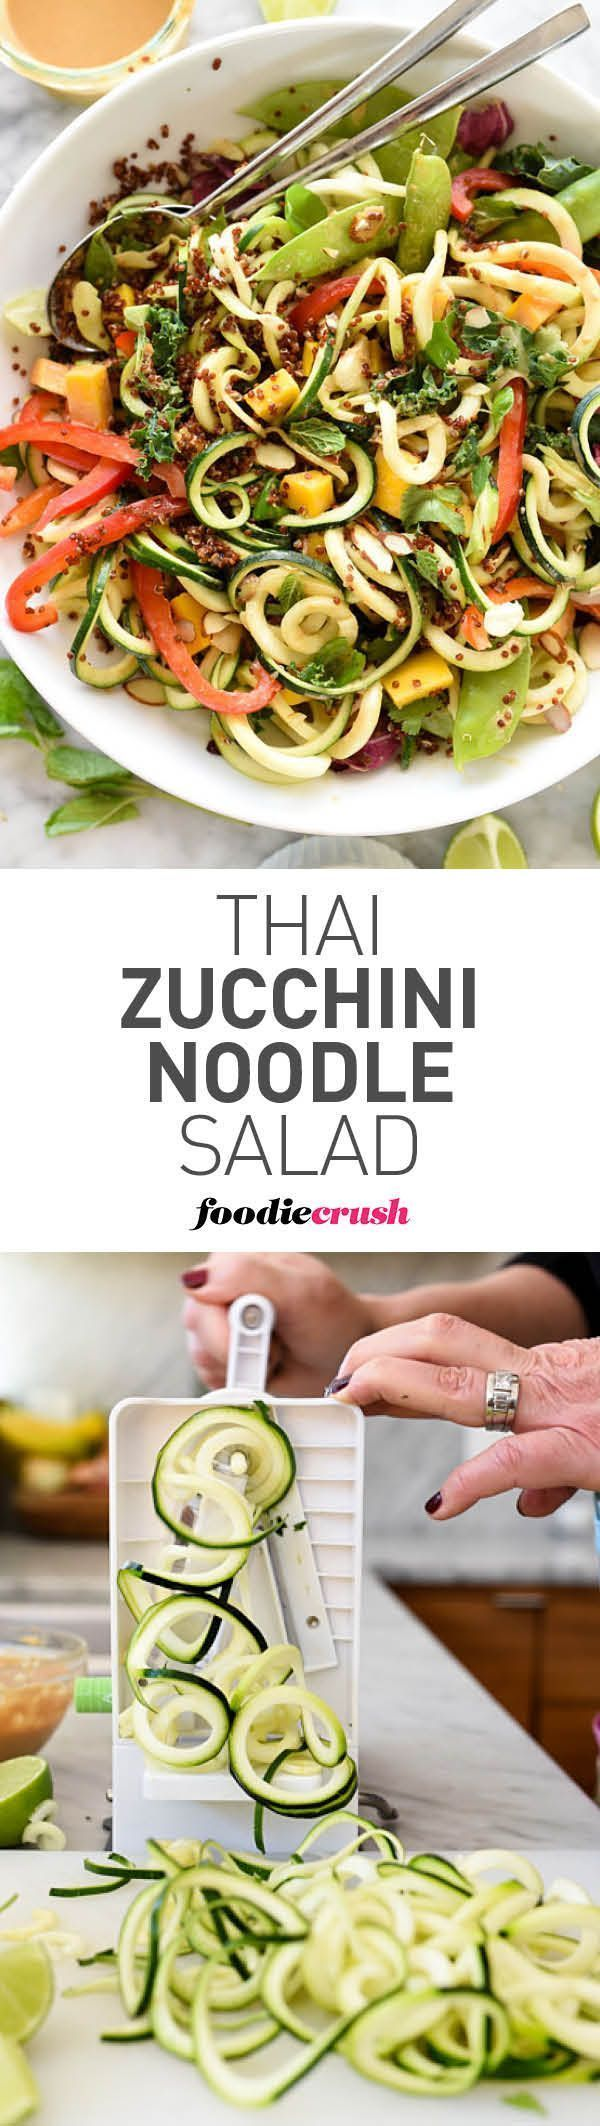 I'm obsessed with spiralized noodles. Zucchini is the base of this raw vegetable salad with a flavorful Thai peanut dressing that everyone loves | http://foodiecrush.com #healthy #salad #zoodles